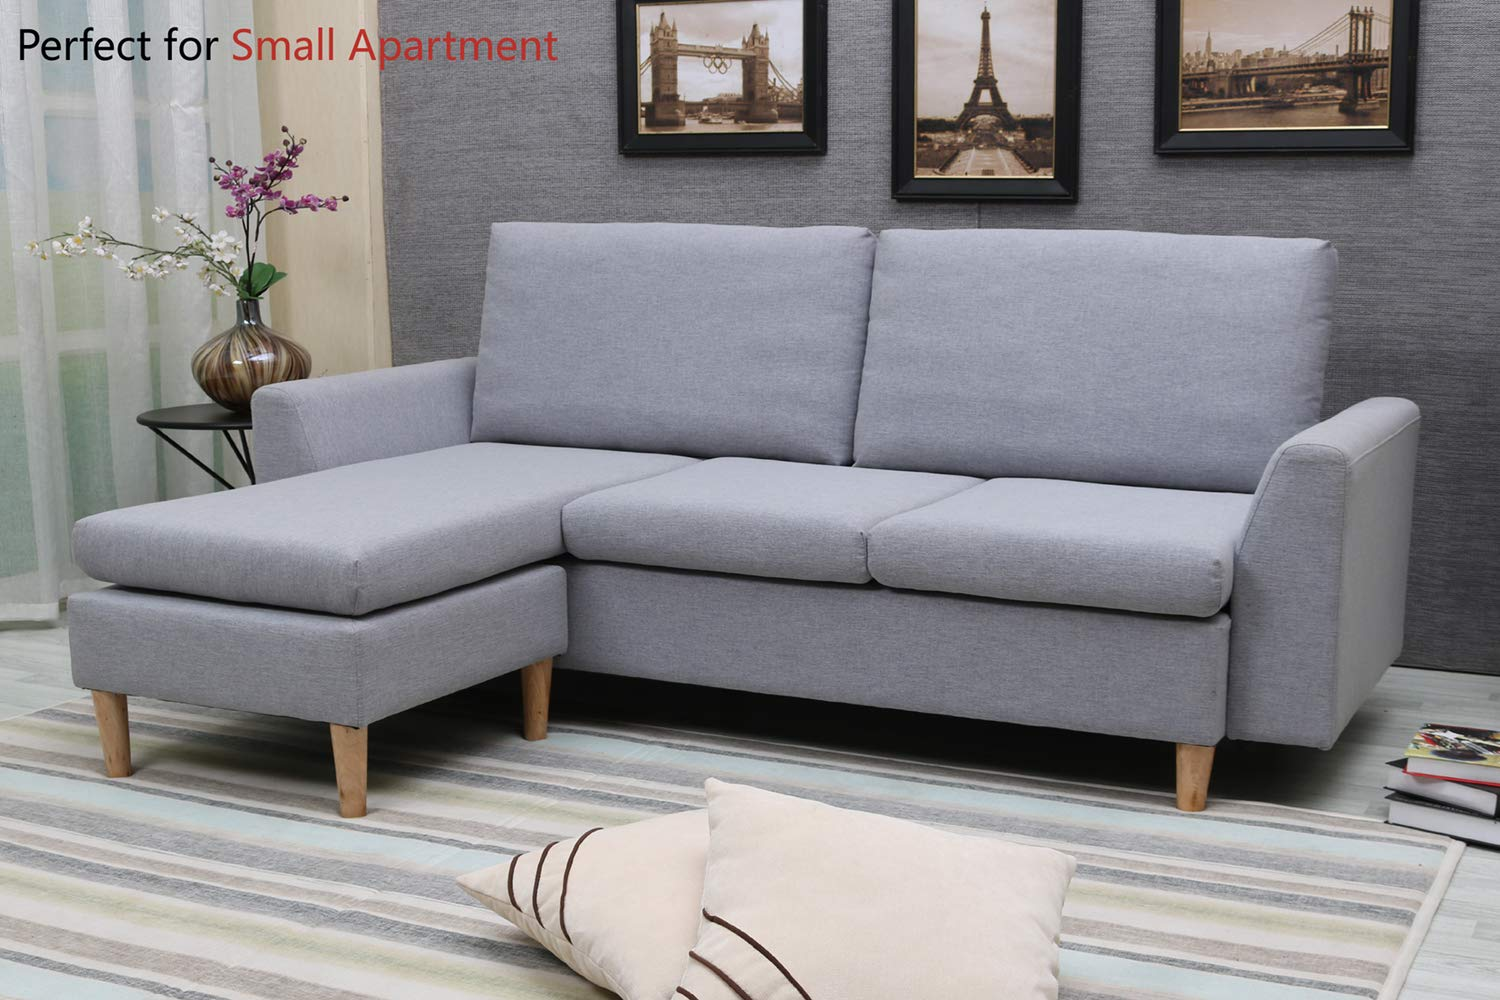 Sectional Sofa, L-Shape Sectional Couch with Reversible Chaise, Couches and Sofas with Modern Linen Fabric for Small Space (Grey)